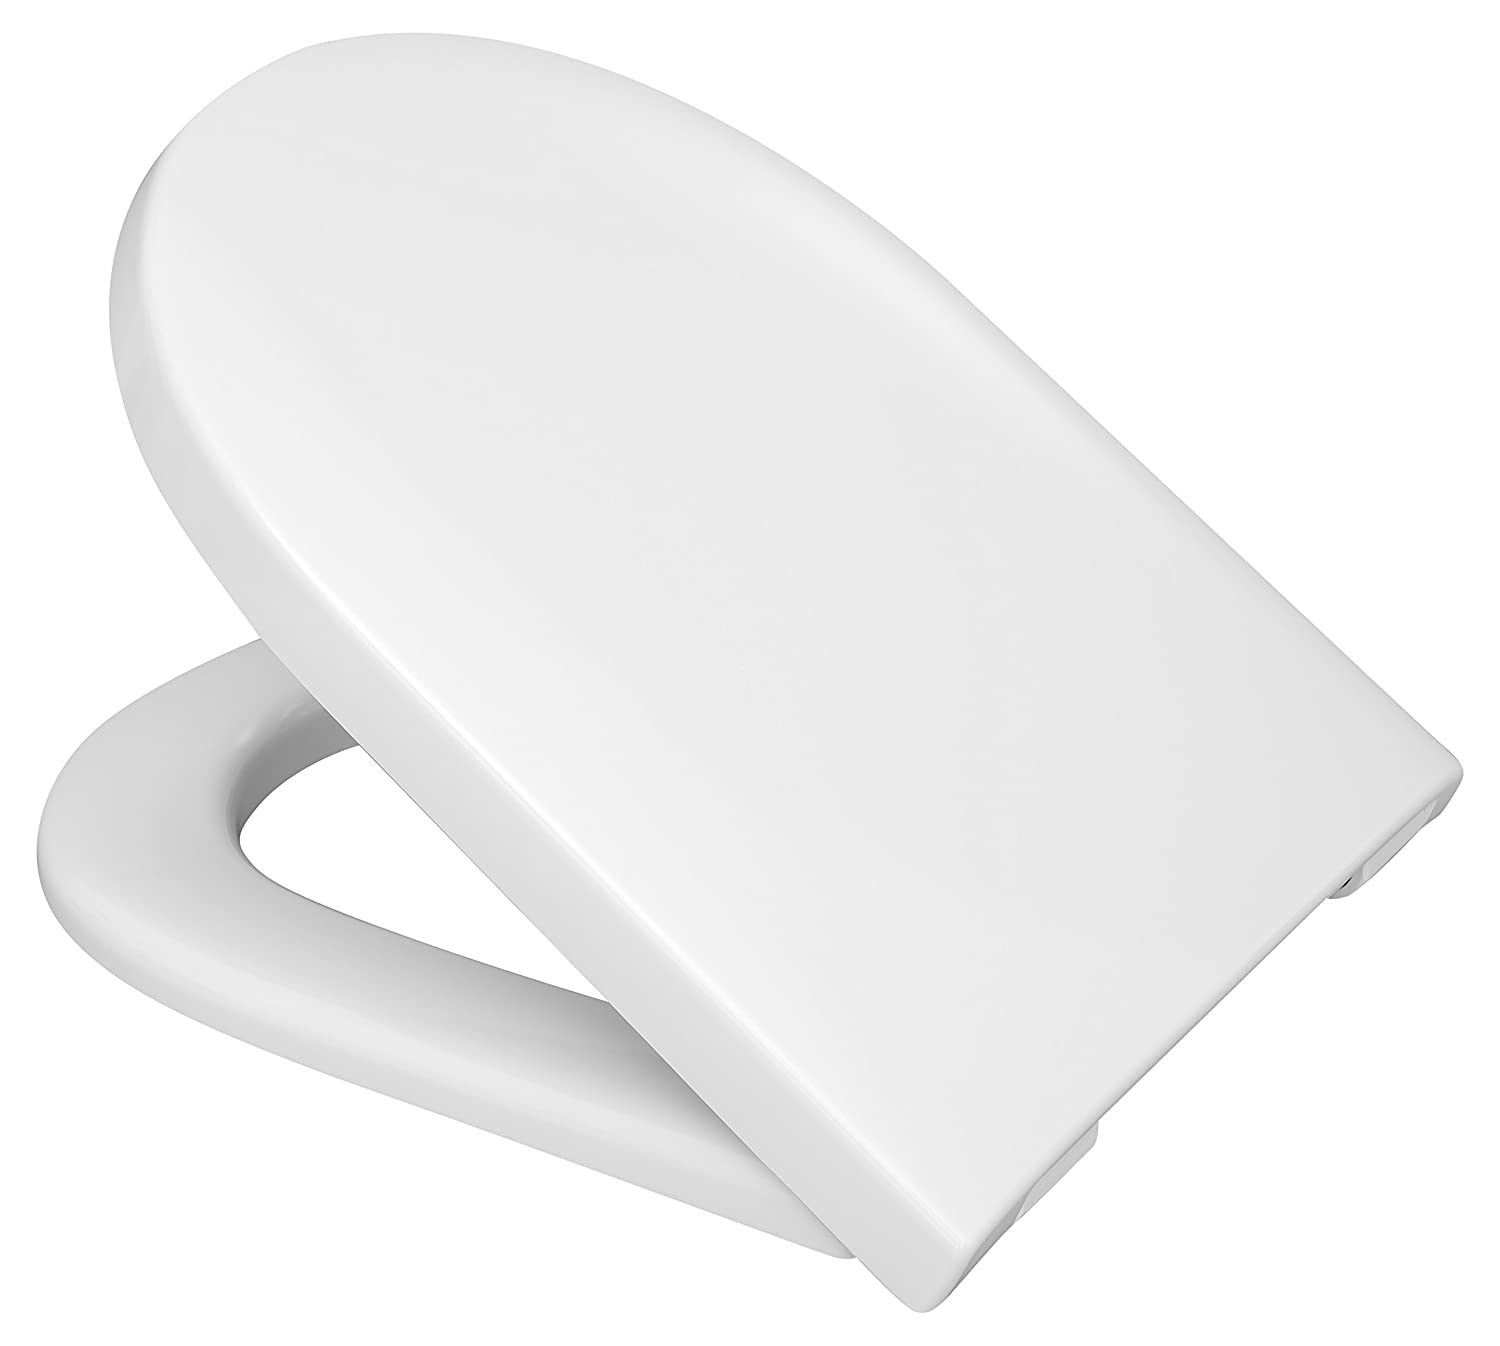 Hinged Folding Pegs C4302G Haro Tube SoftClose Premium Toilet Seat Omnia Architectura Compatible with V/&B Subway I Sunberry White 519740